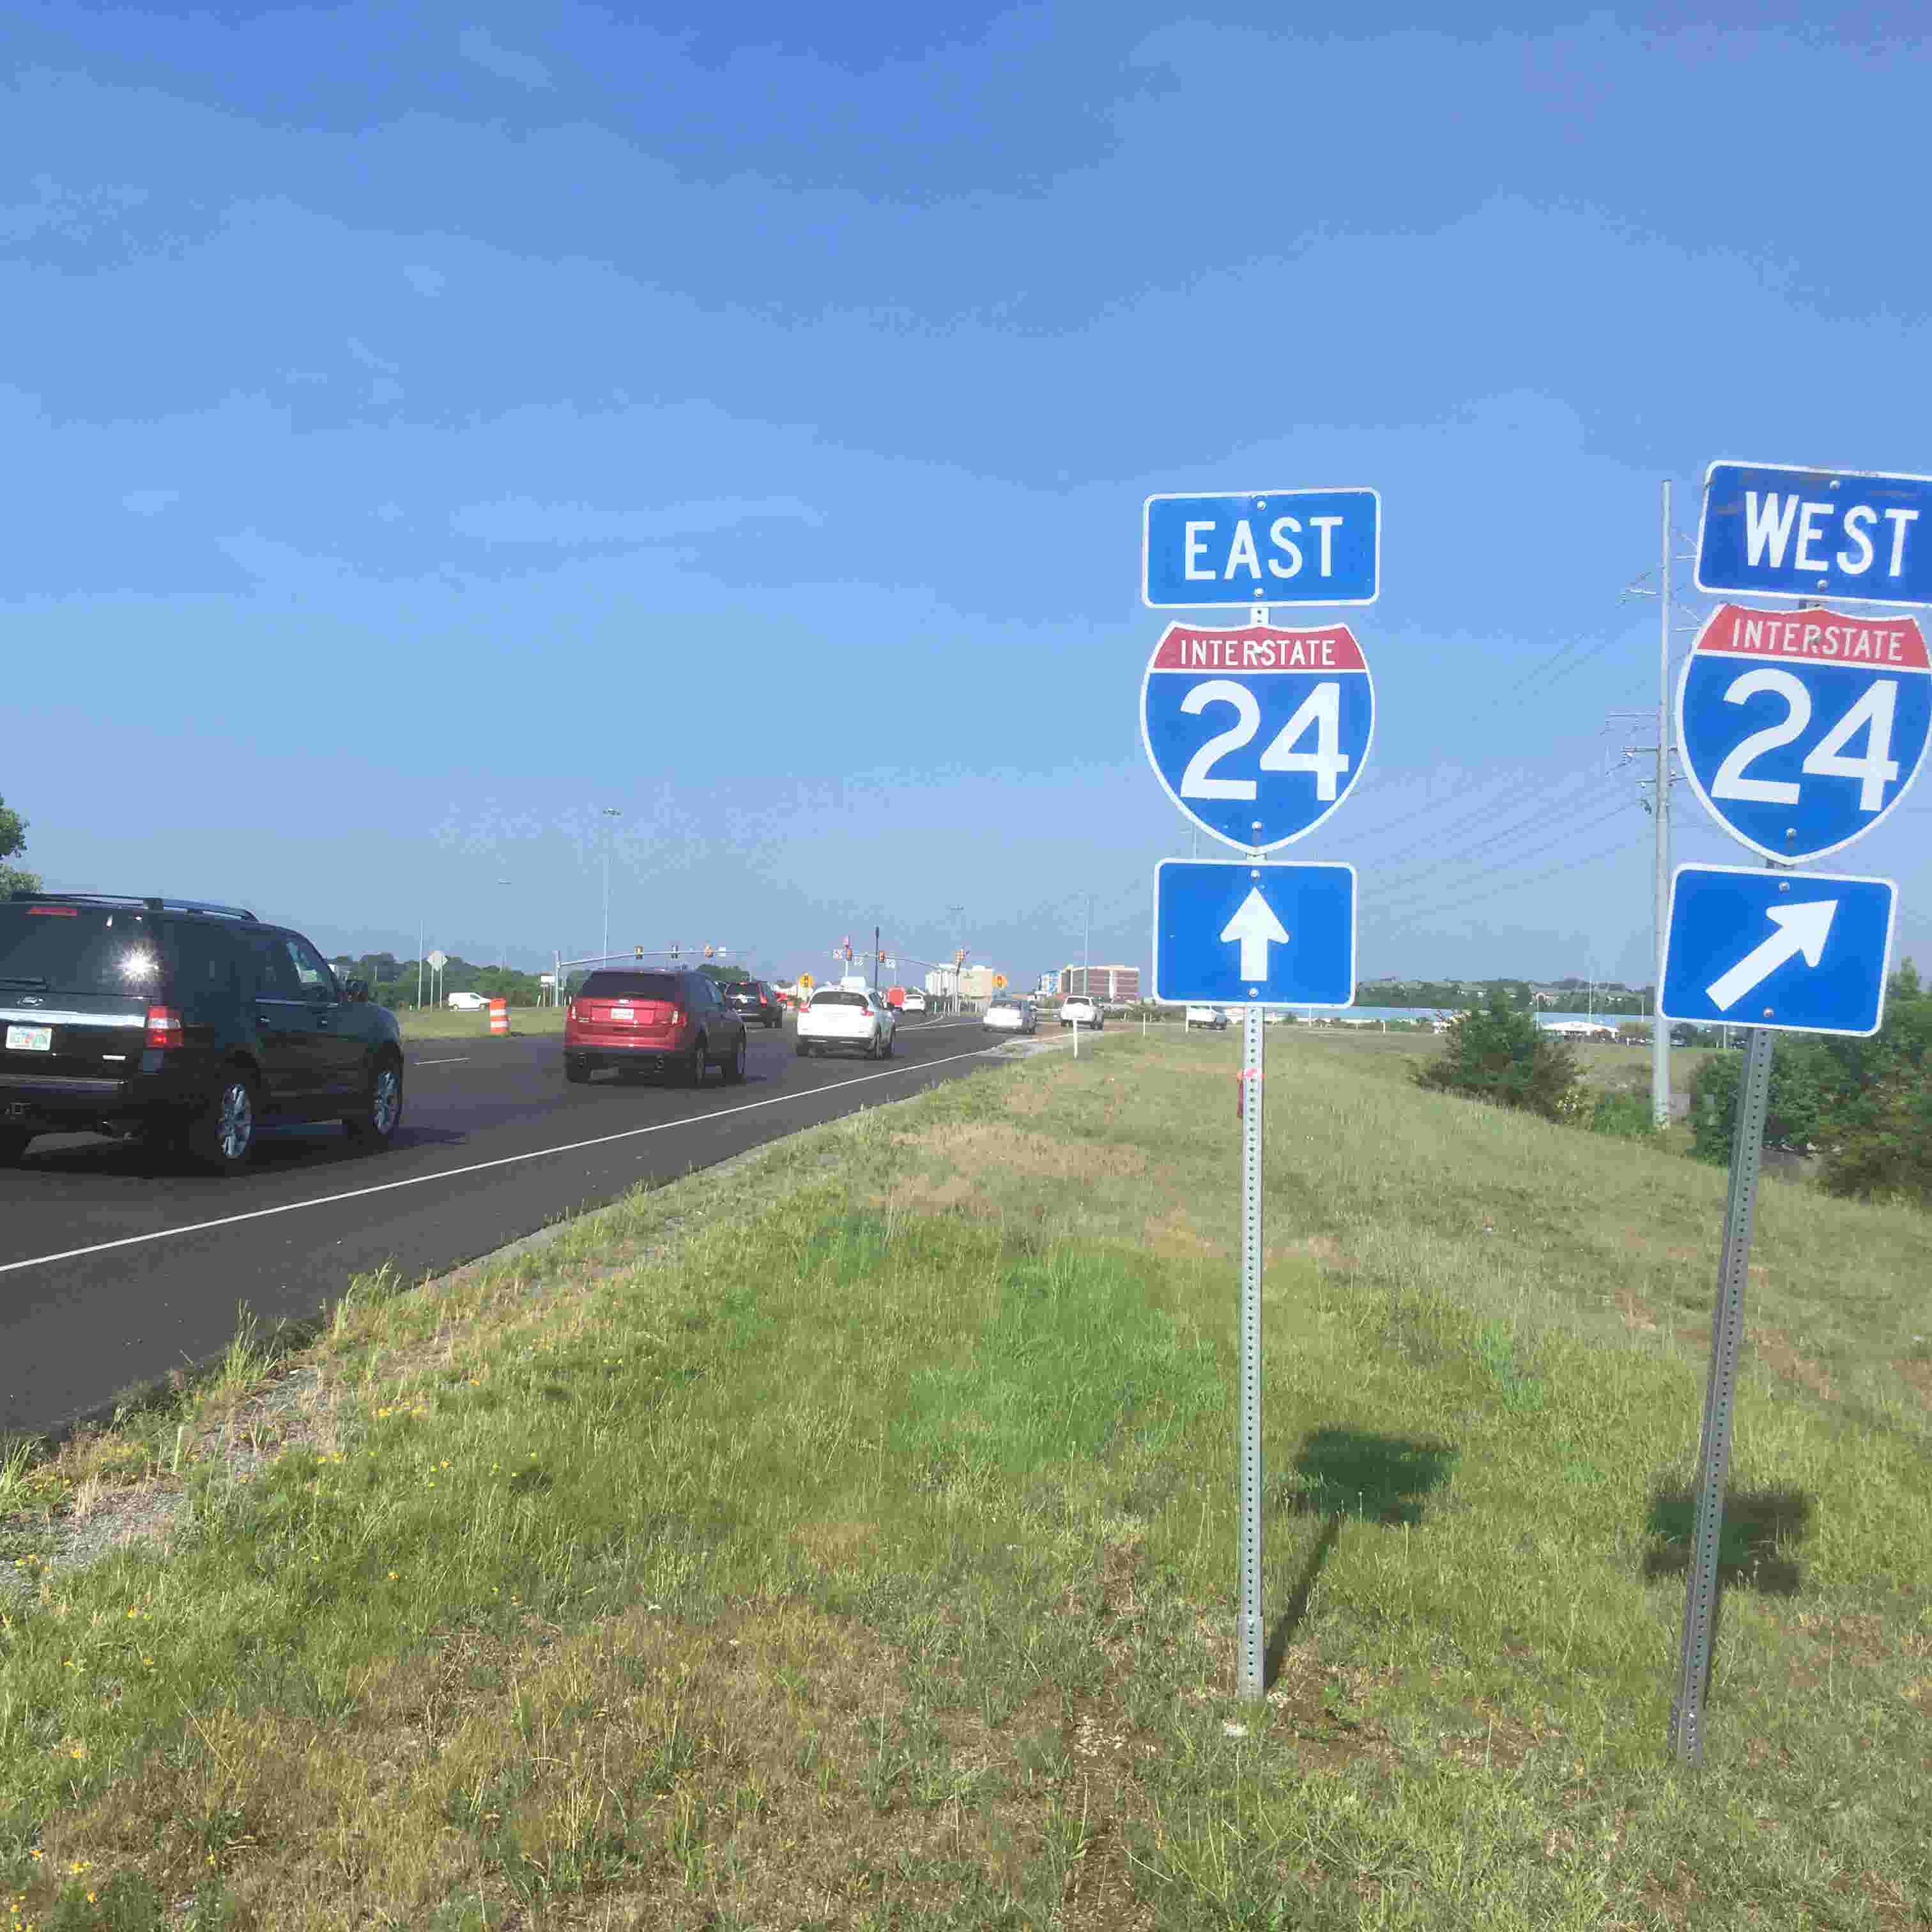 Sam Ridley Parkway will be widened to 3 lanes each way from 2 lanes